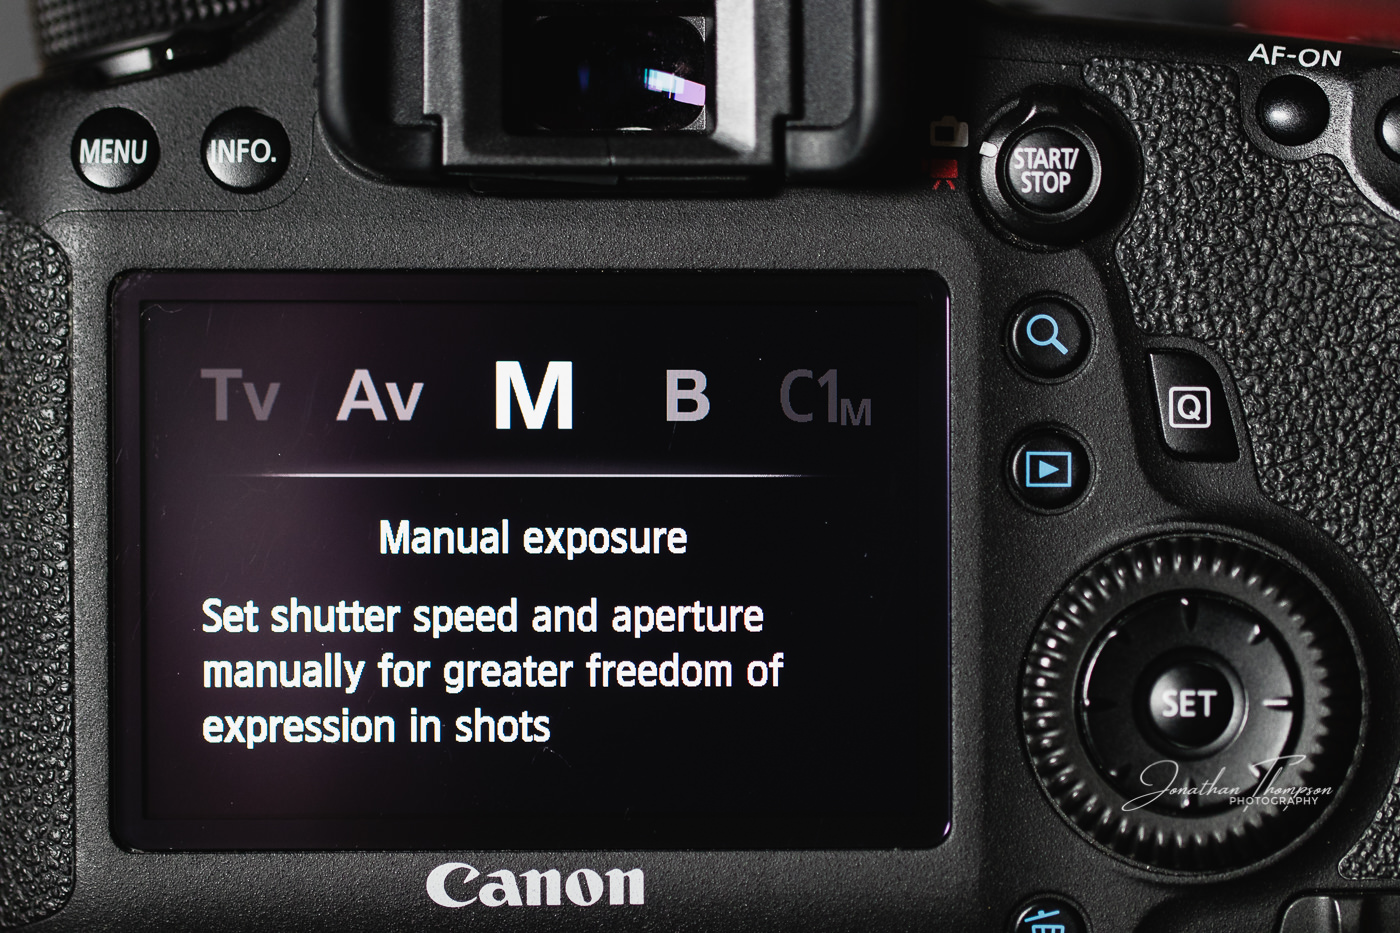 Canon DSLR rear screen displaying Manual camera mode